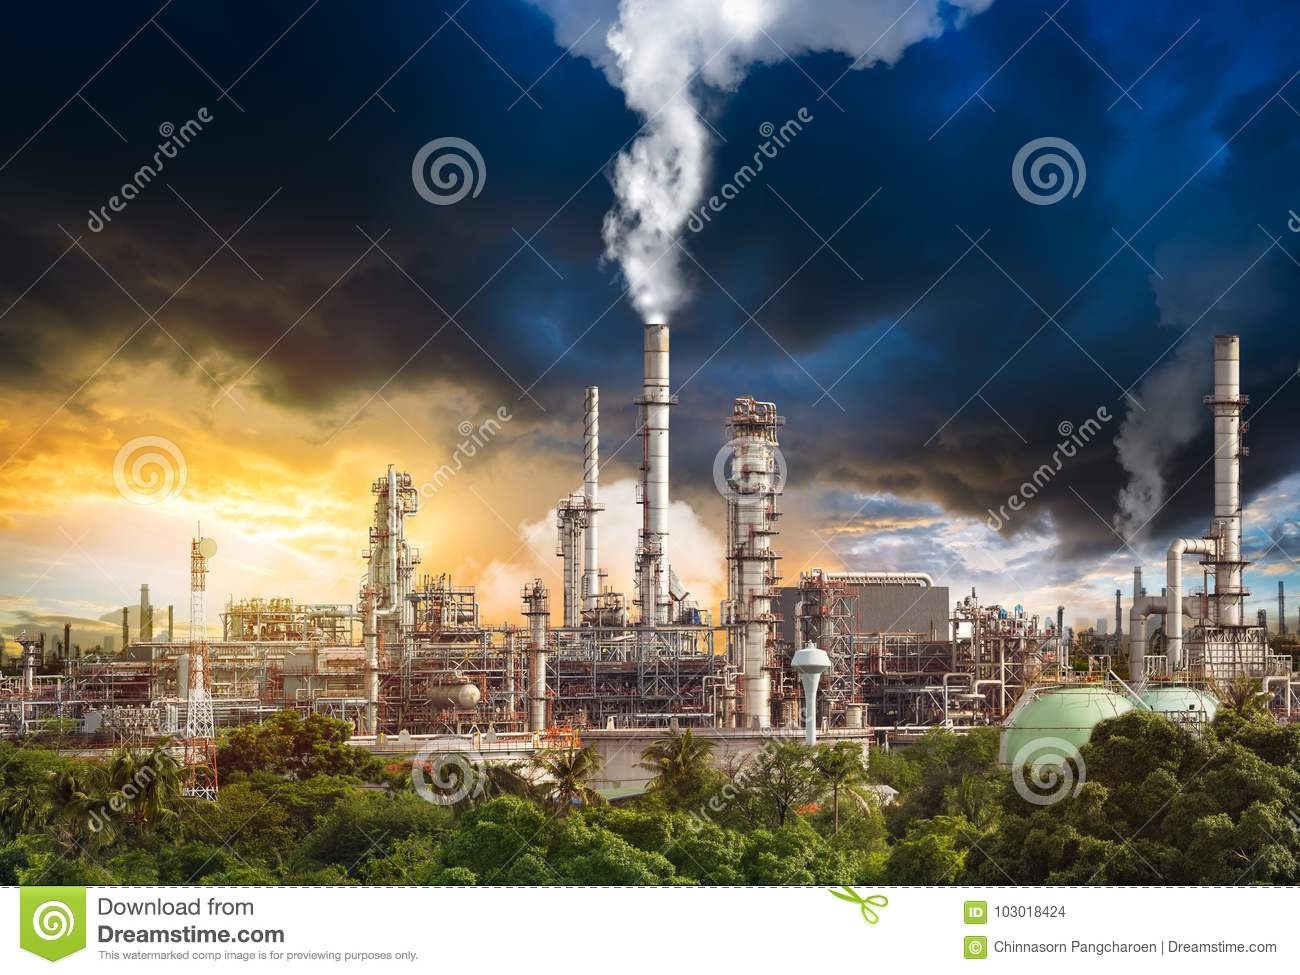 Pollution from oil refinery